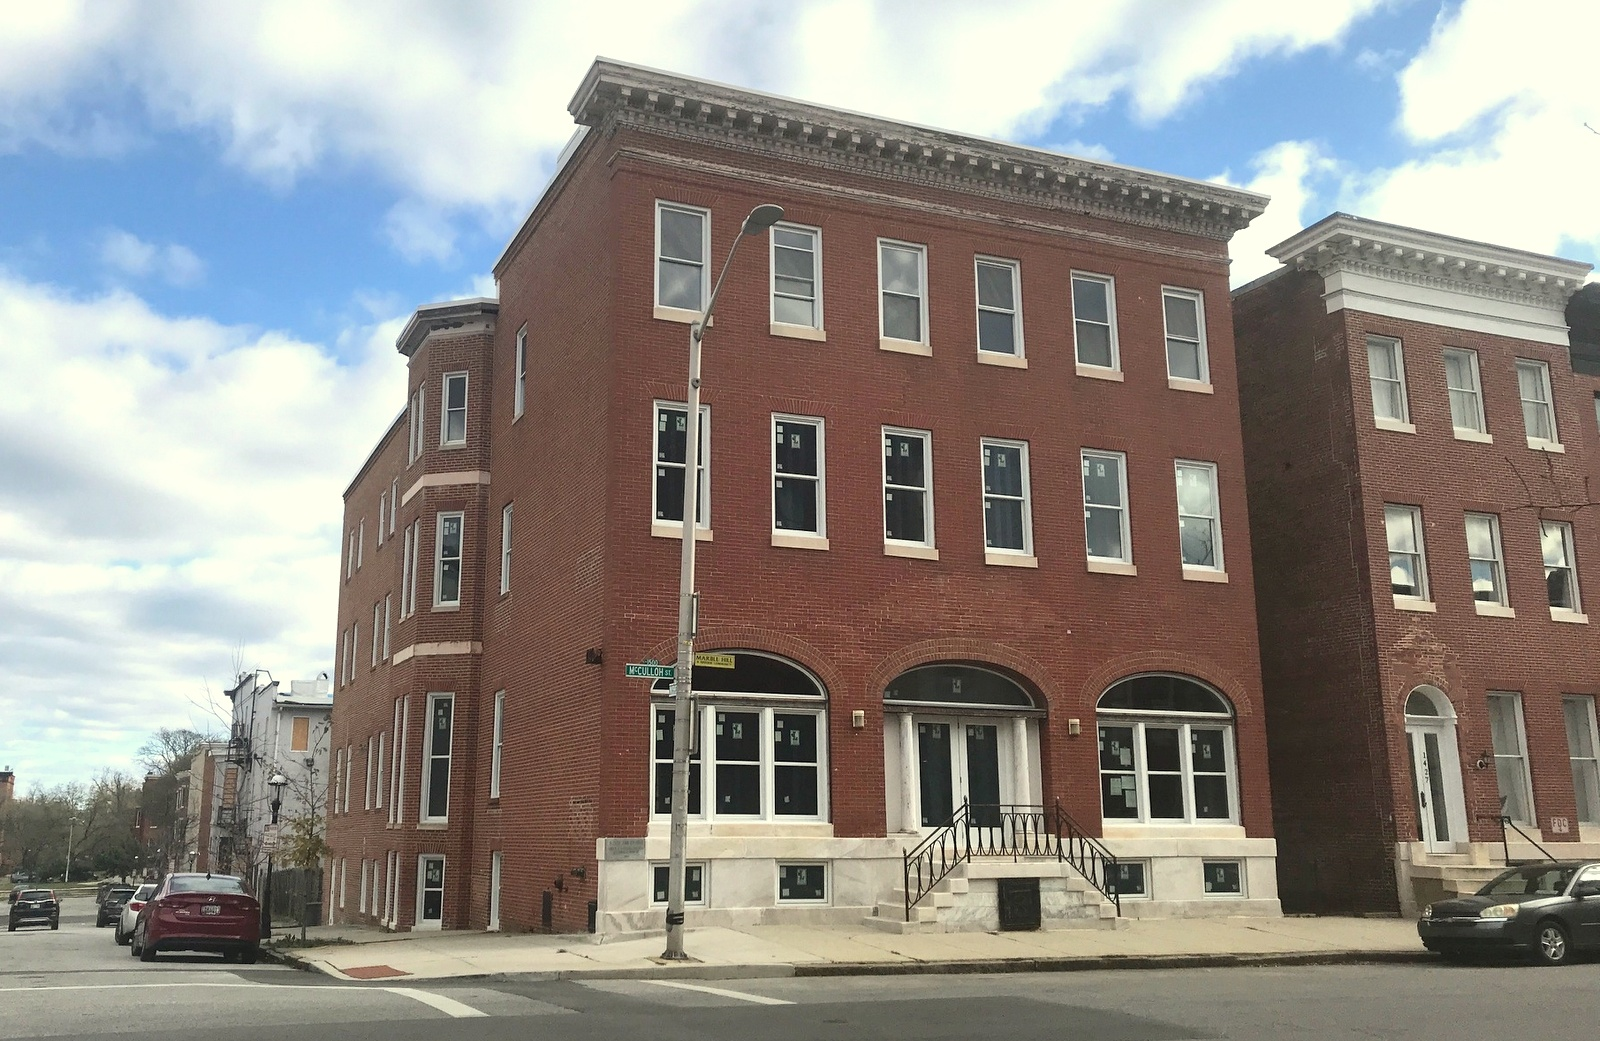 The building at 1429 McCulloh Street was purchased for $94,000 by Bethele Church in 1989. By 2010, it had so deteriorated that it was vacated. With state bond money, new windows have been installed. (Mark Reutter)